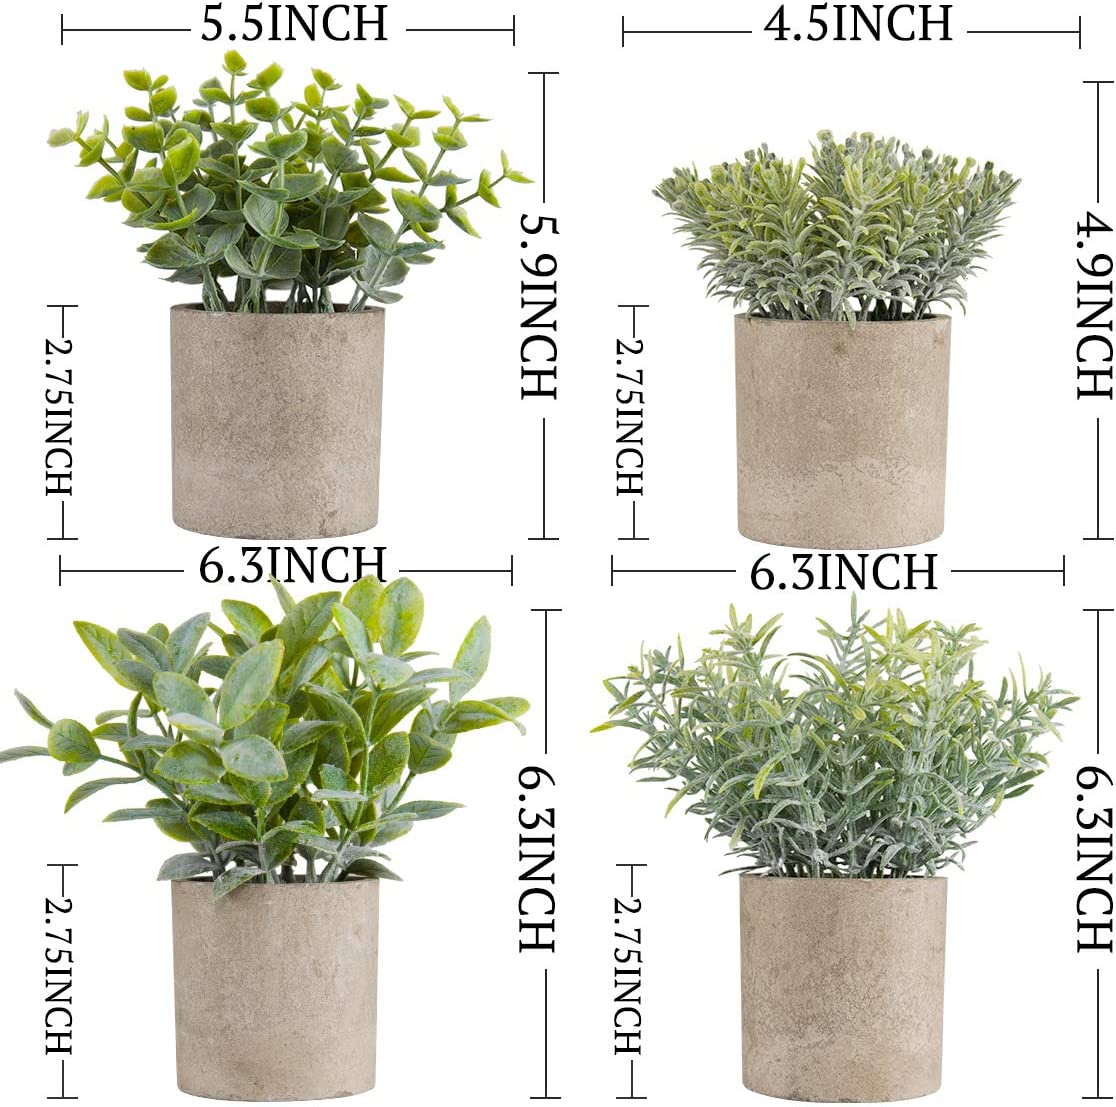 Indoor /& Outdoor,Set of 4 Miracliy Mini Potted Fake Plants Faux Artificial Eucalyptus Boxwood Rosemary Greenery in Gray Pots for Home Office Desk Bathroom Decoration Garden Decor